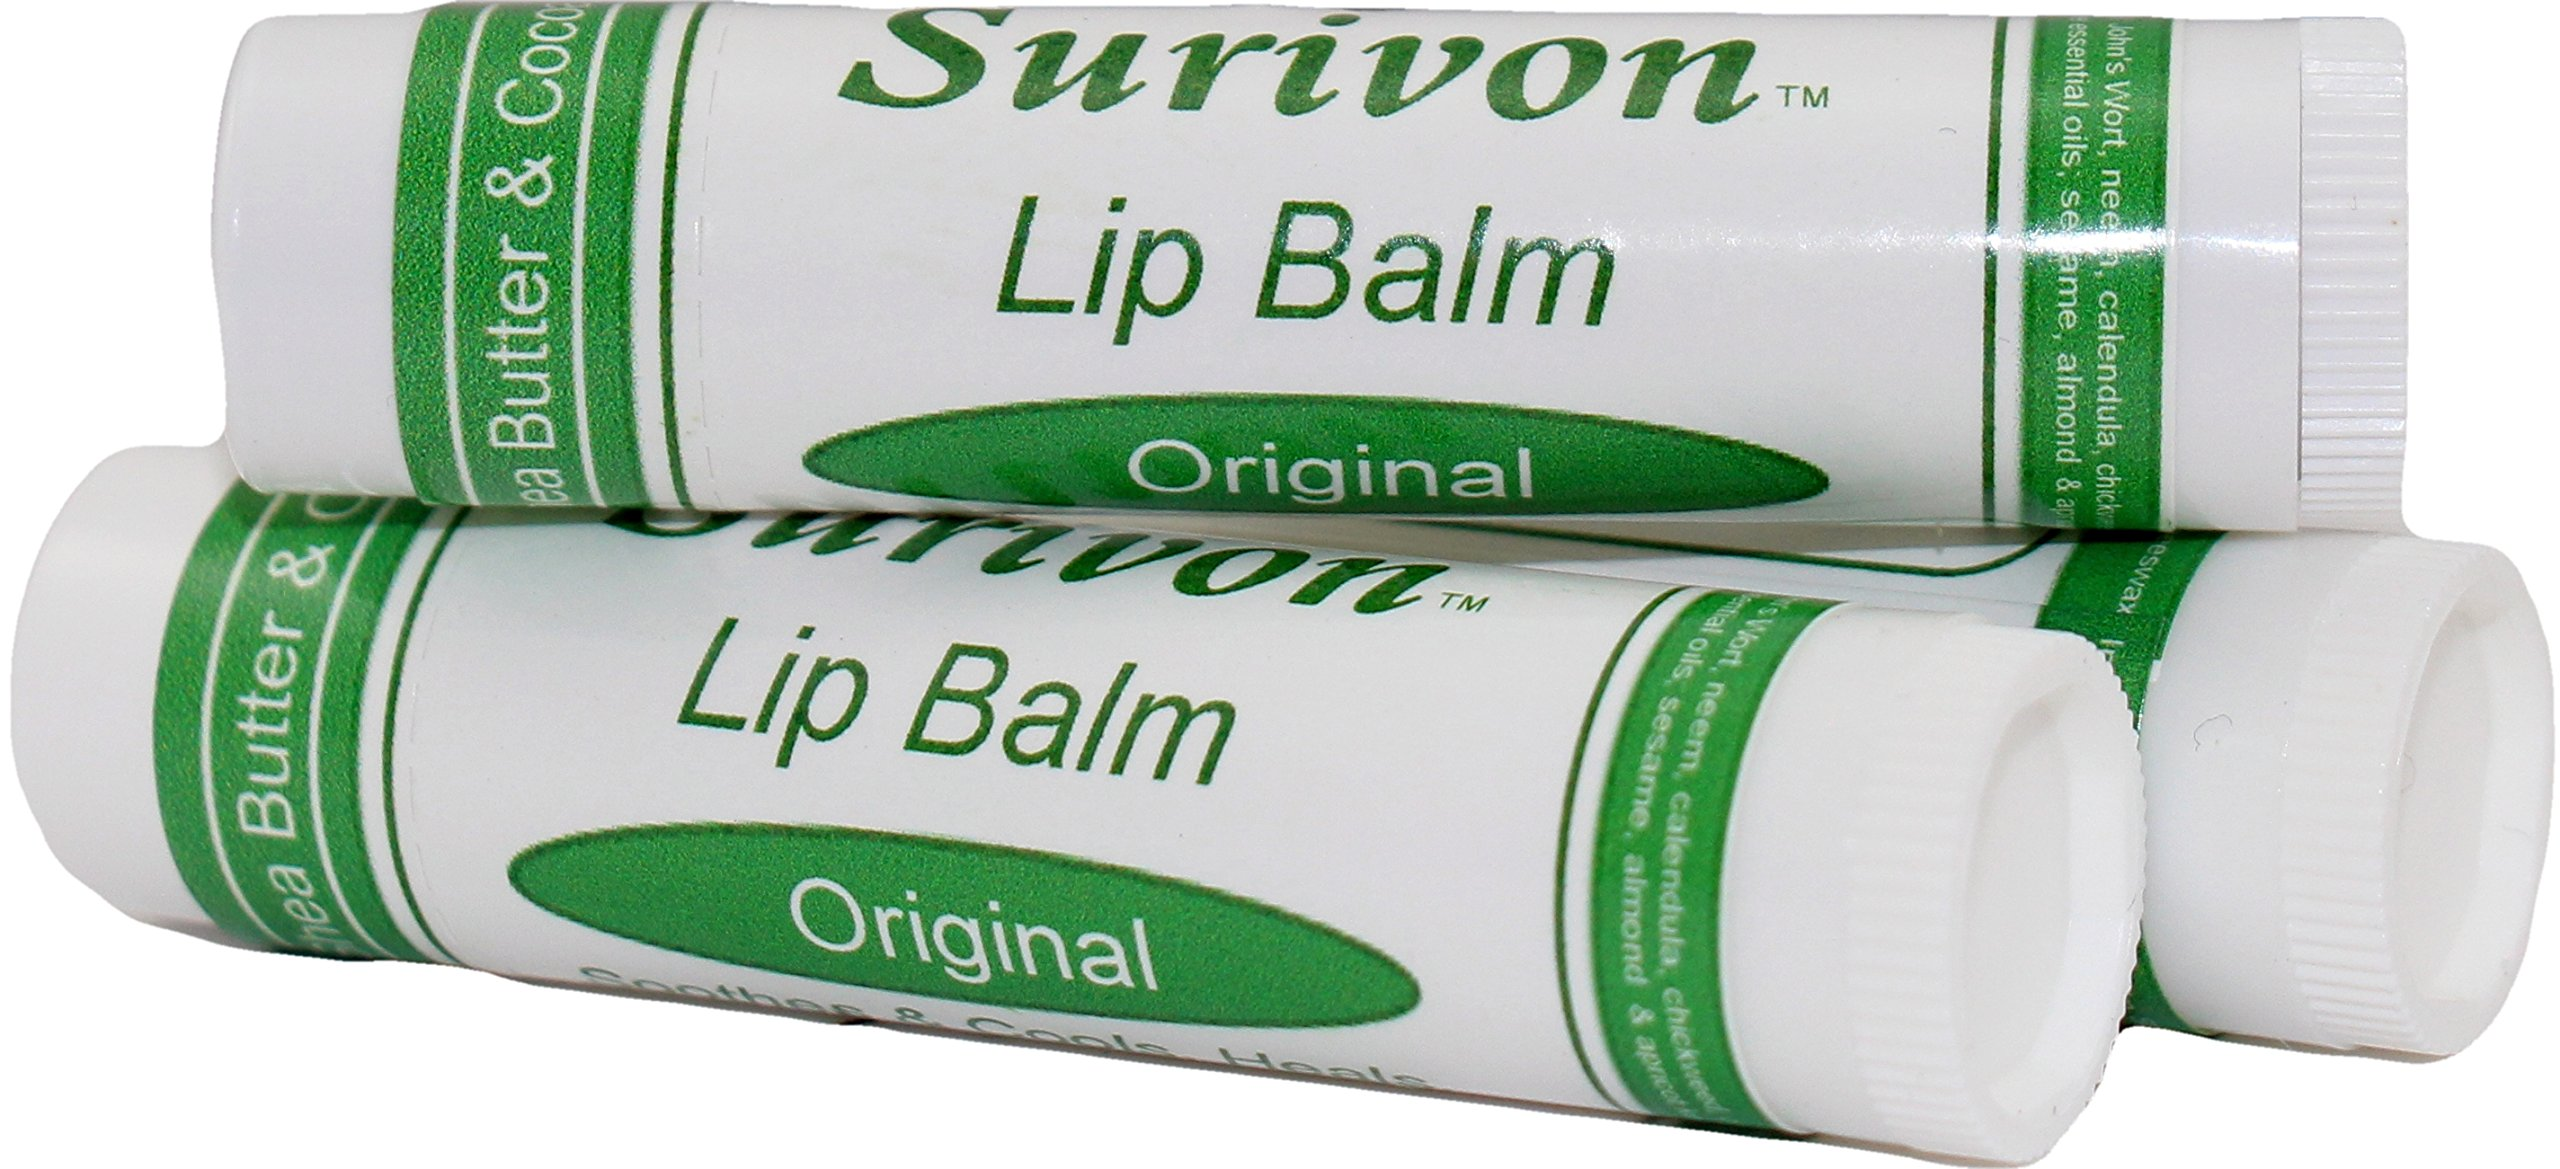 Surivon Lip Balm - 3 pack, Original Formula by Cloverleaf Farm